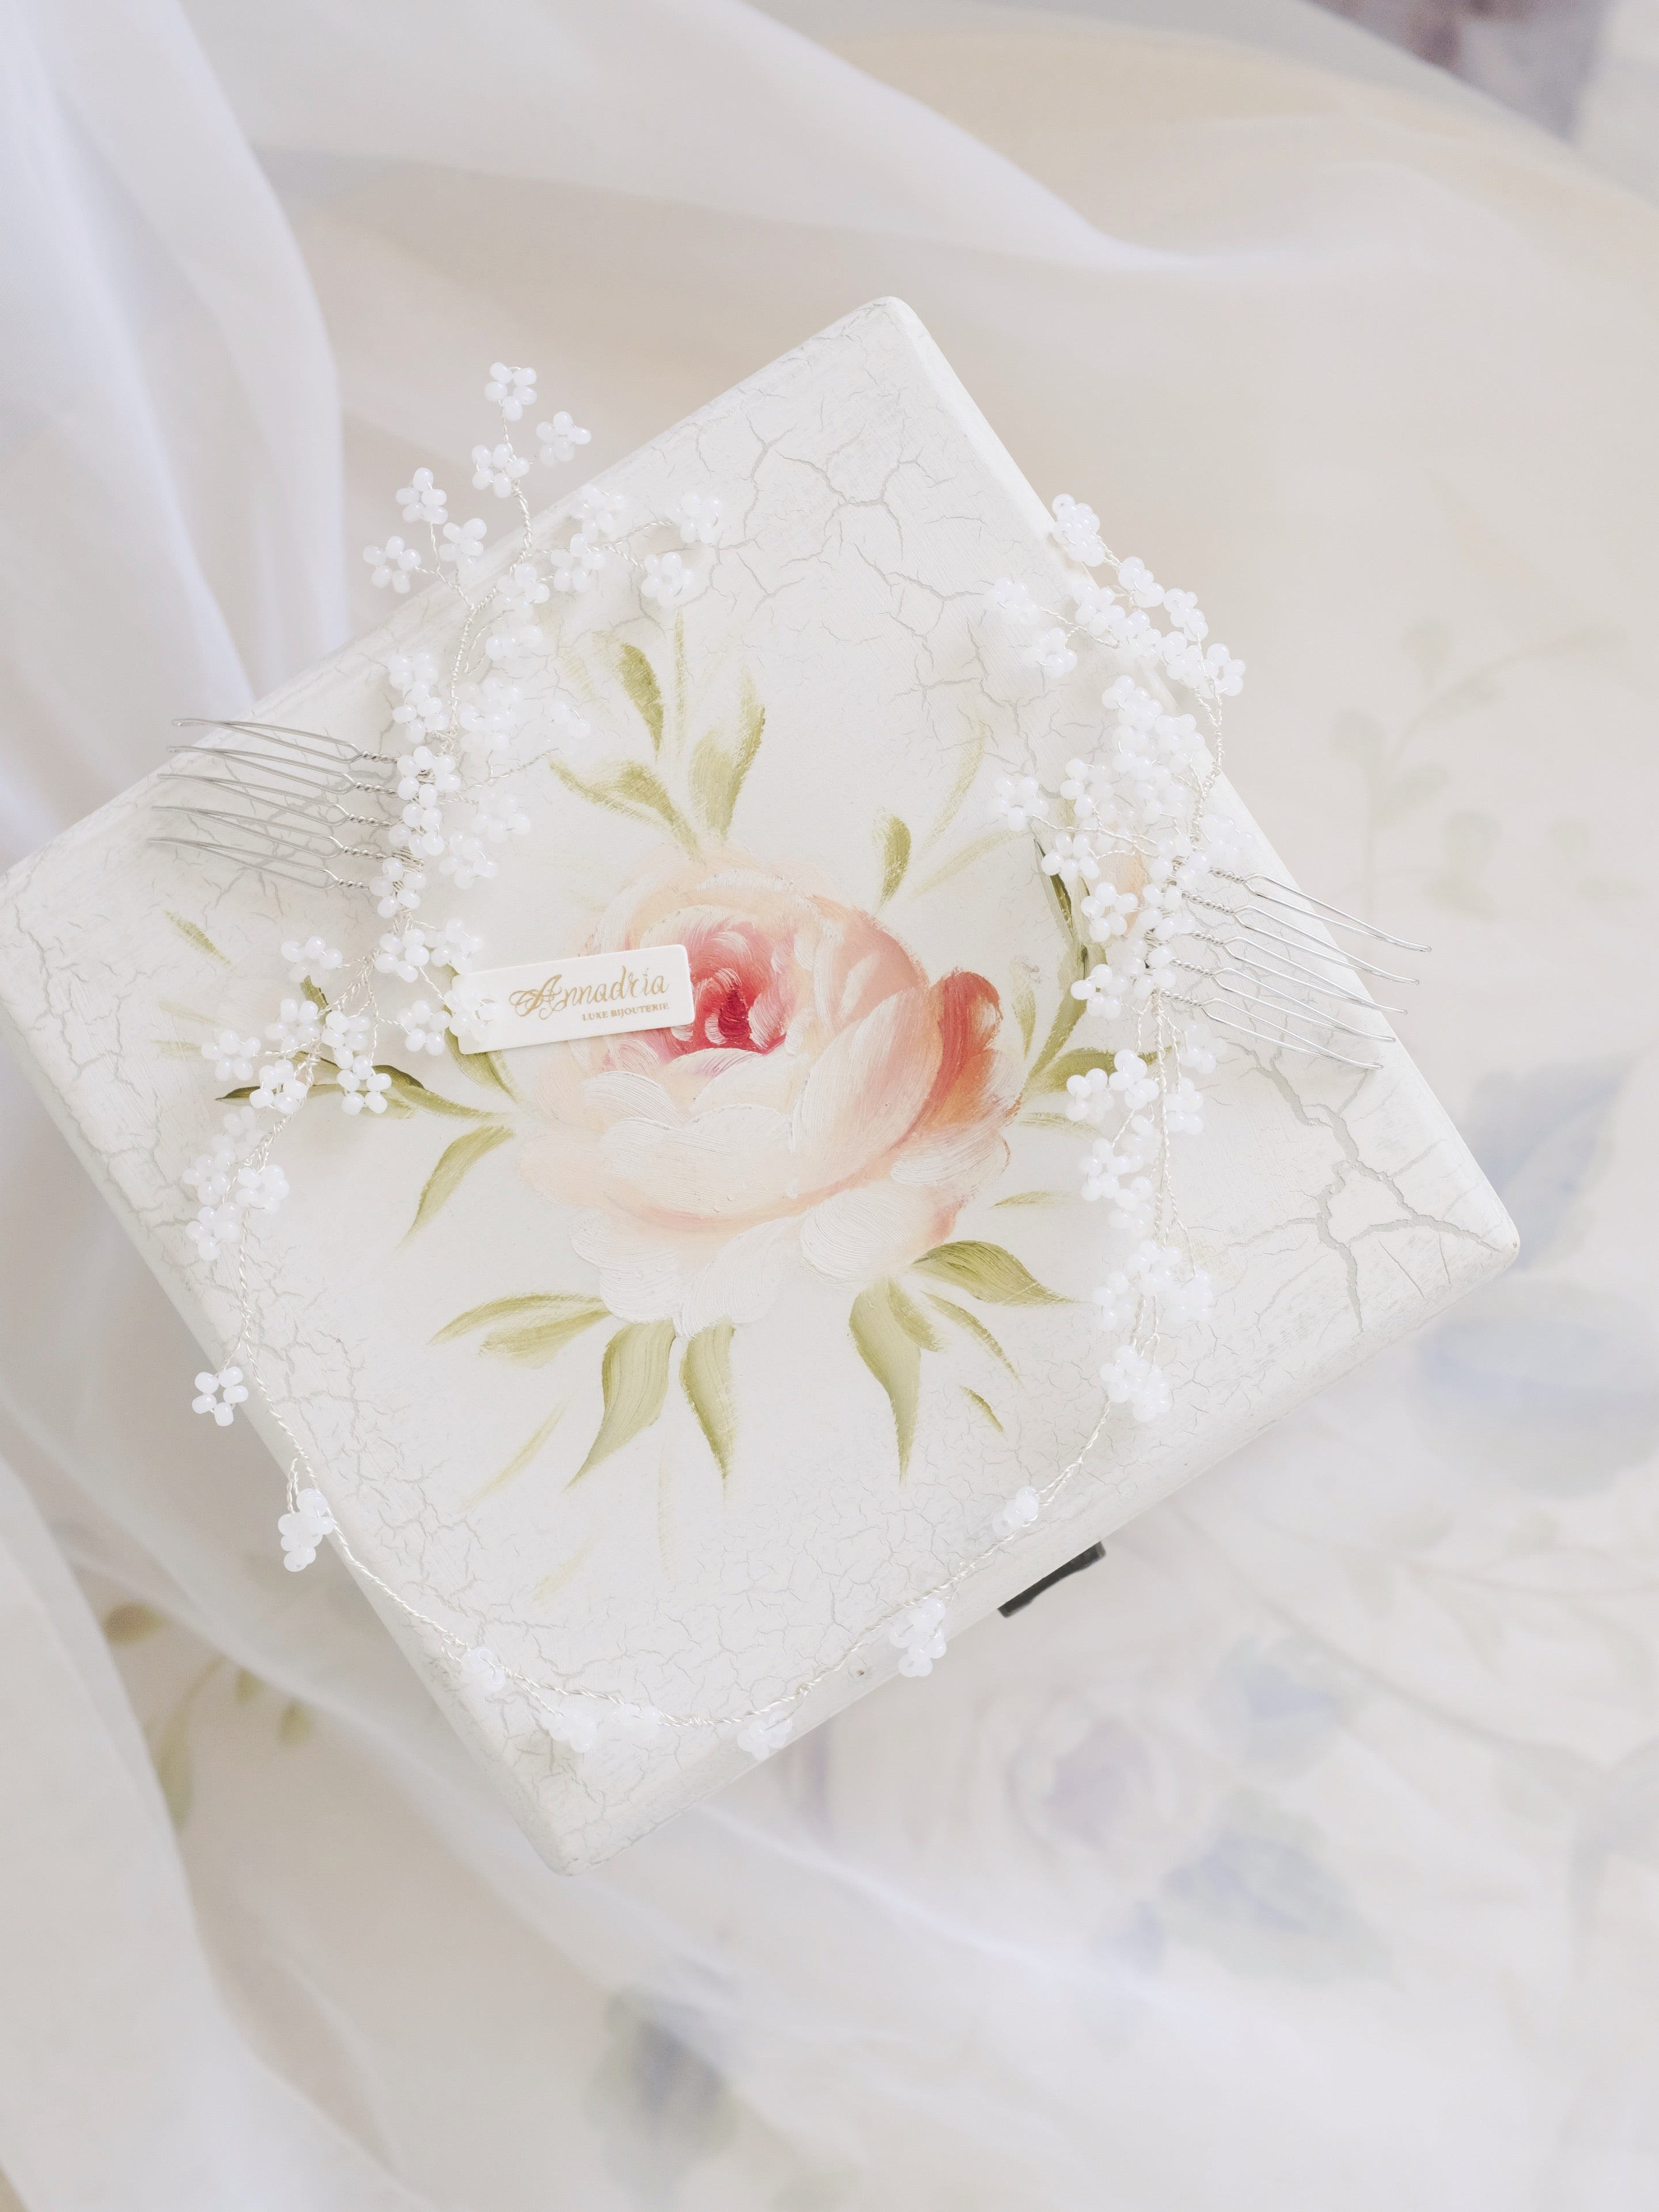 Cherry Blossom wedding headpiece handmade with white beaded flowers for bride